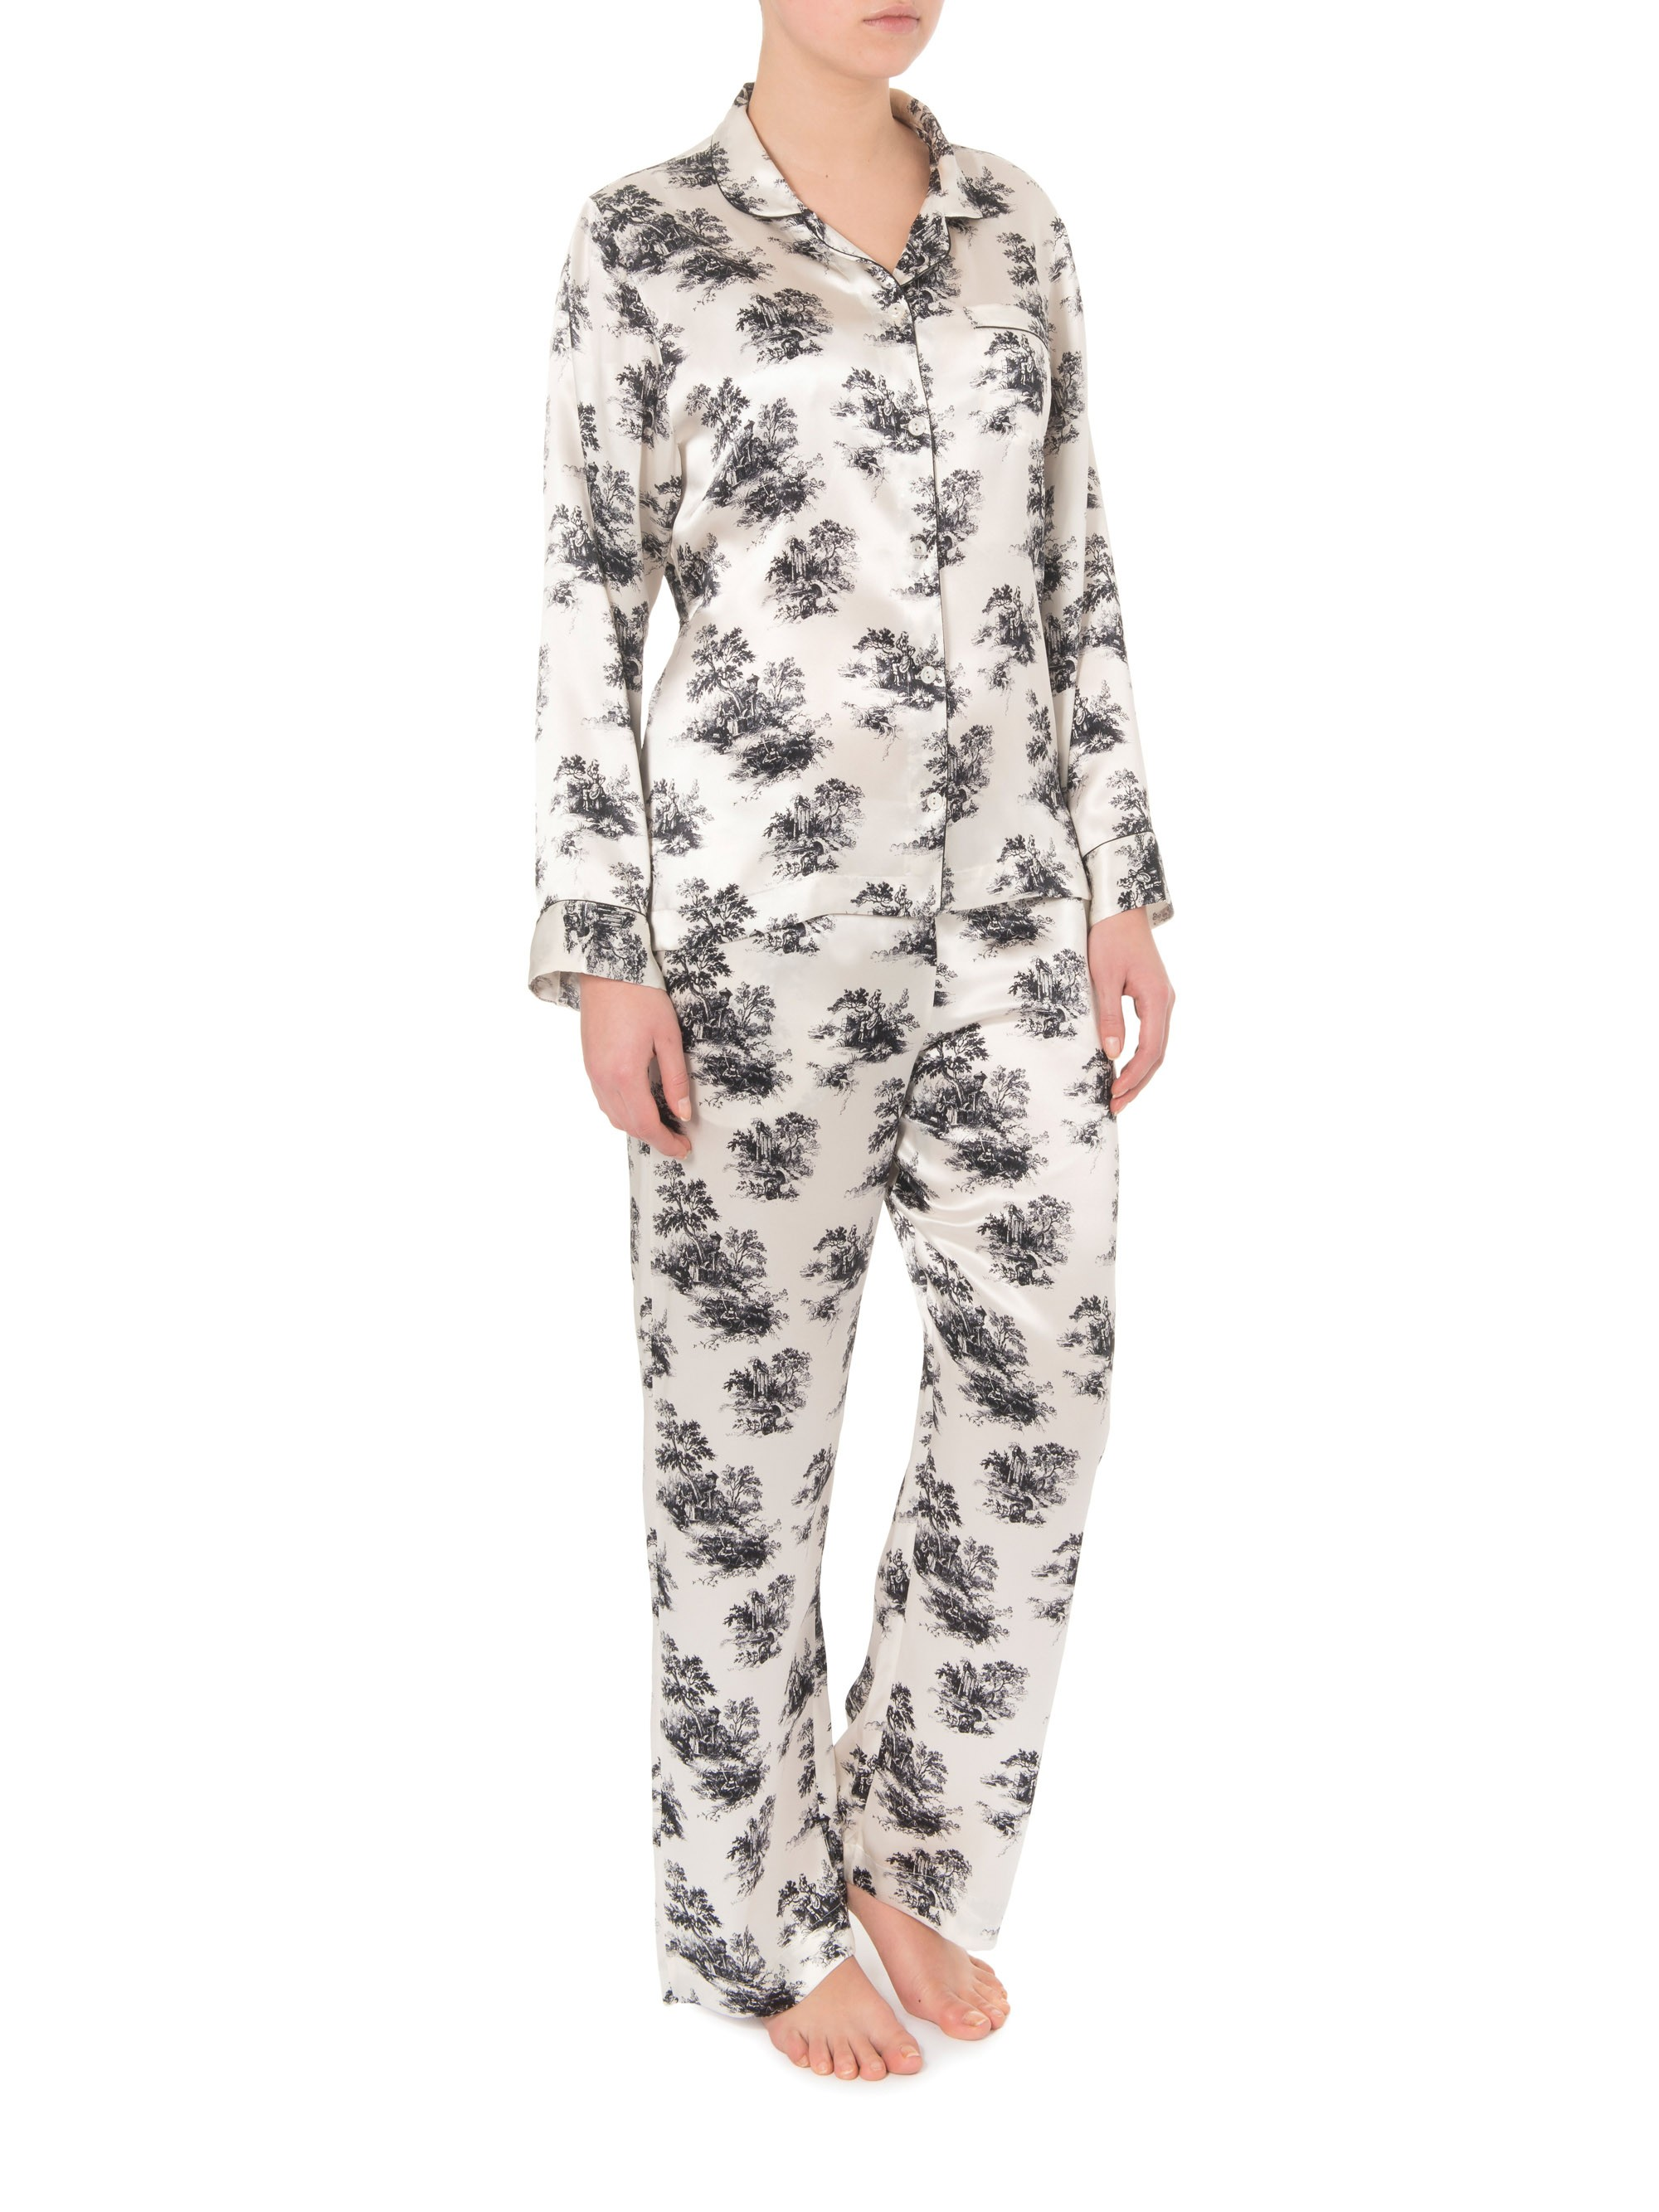 10 Of The Most Expensive Sleepwear For Women